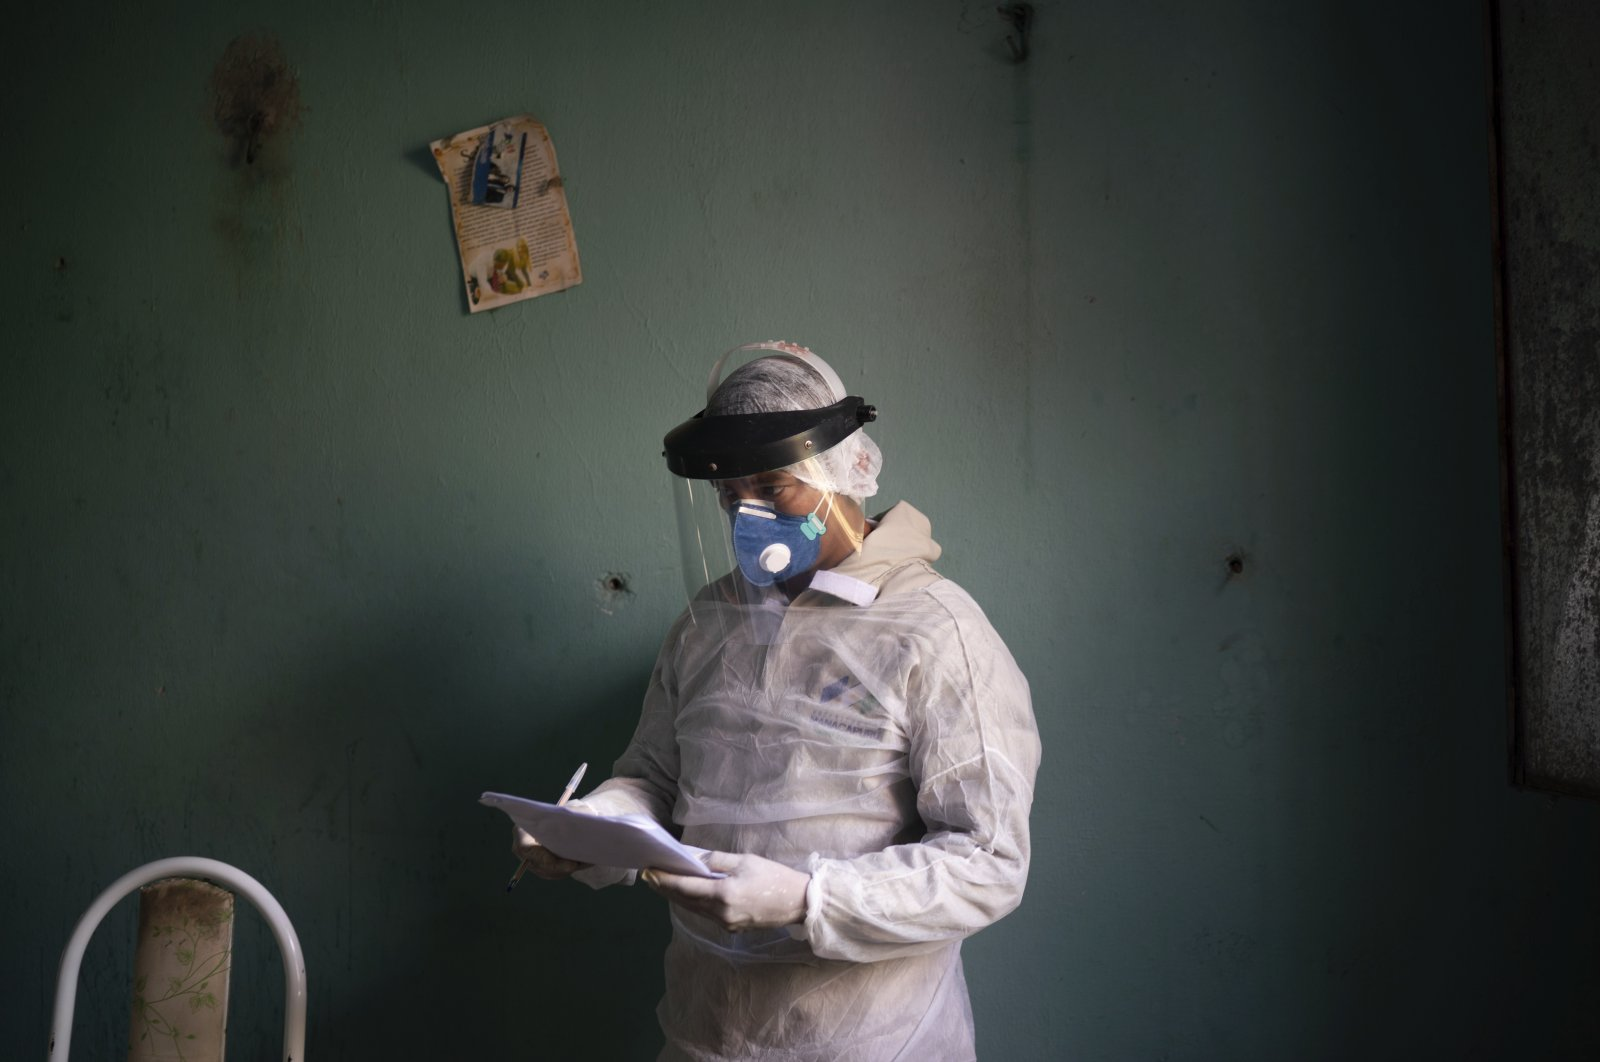 A health worker takes notes as he prepares to collect material for a COVID-19 test on an elderly woman, Manacapuru, Brazil, June 3, 2020. (AP Photo)